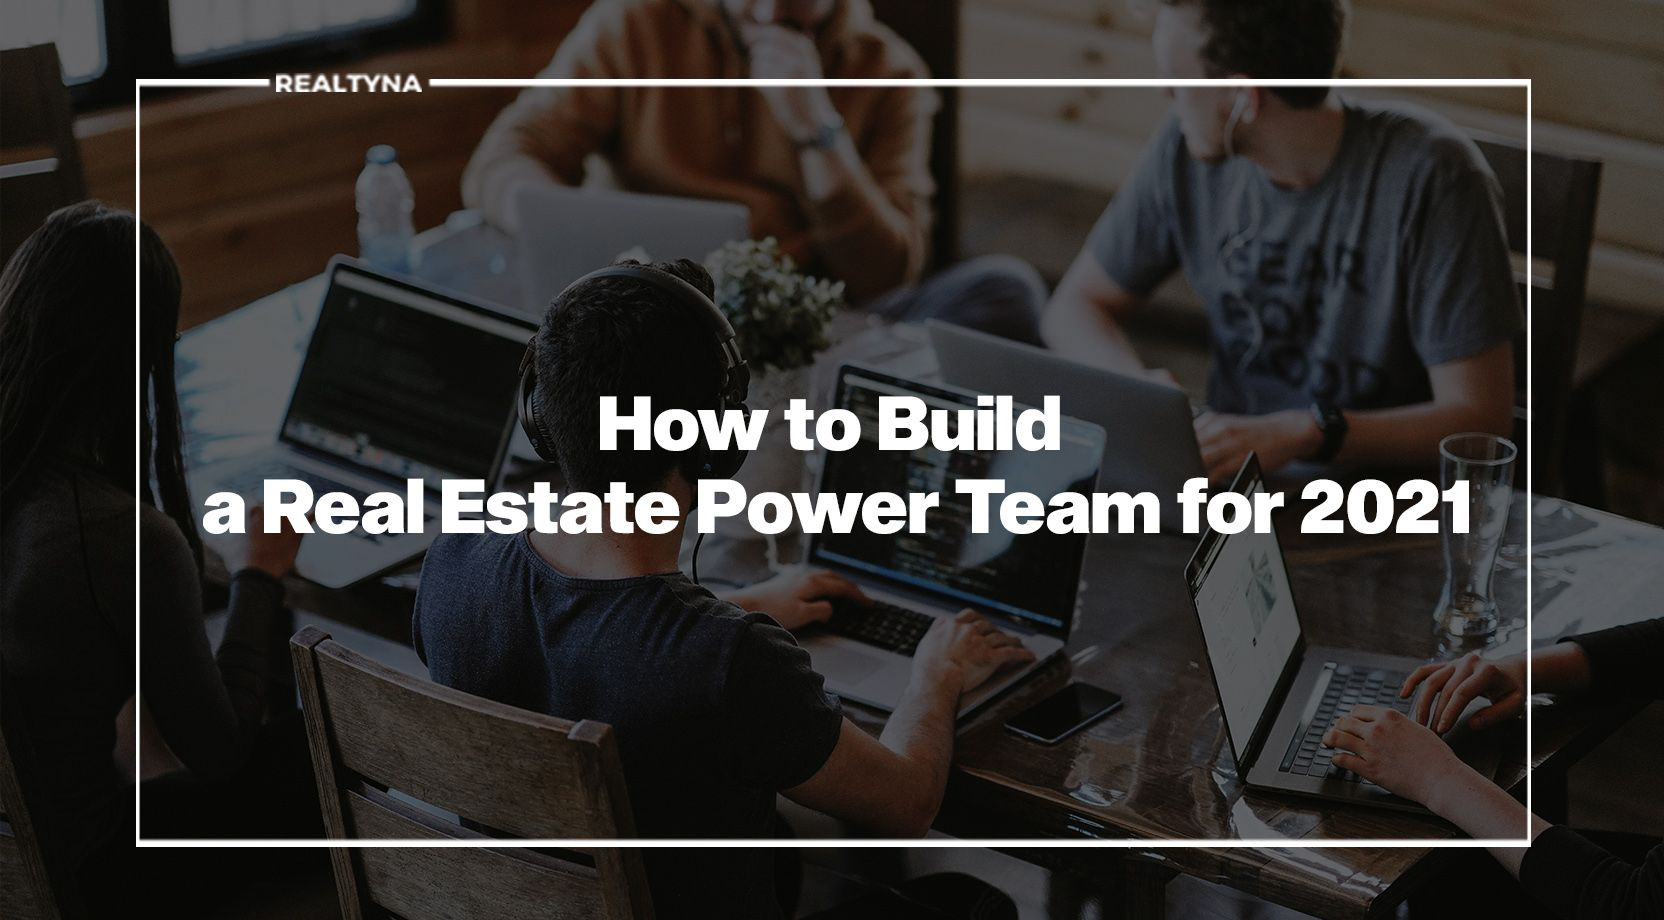 How to Build a Real Estate Power Team for 2021